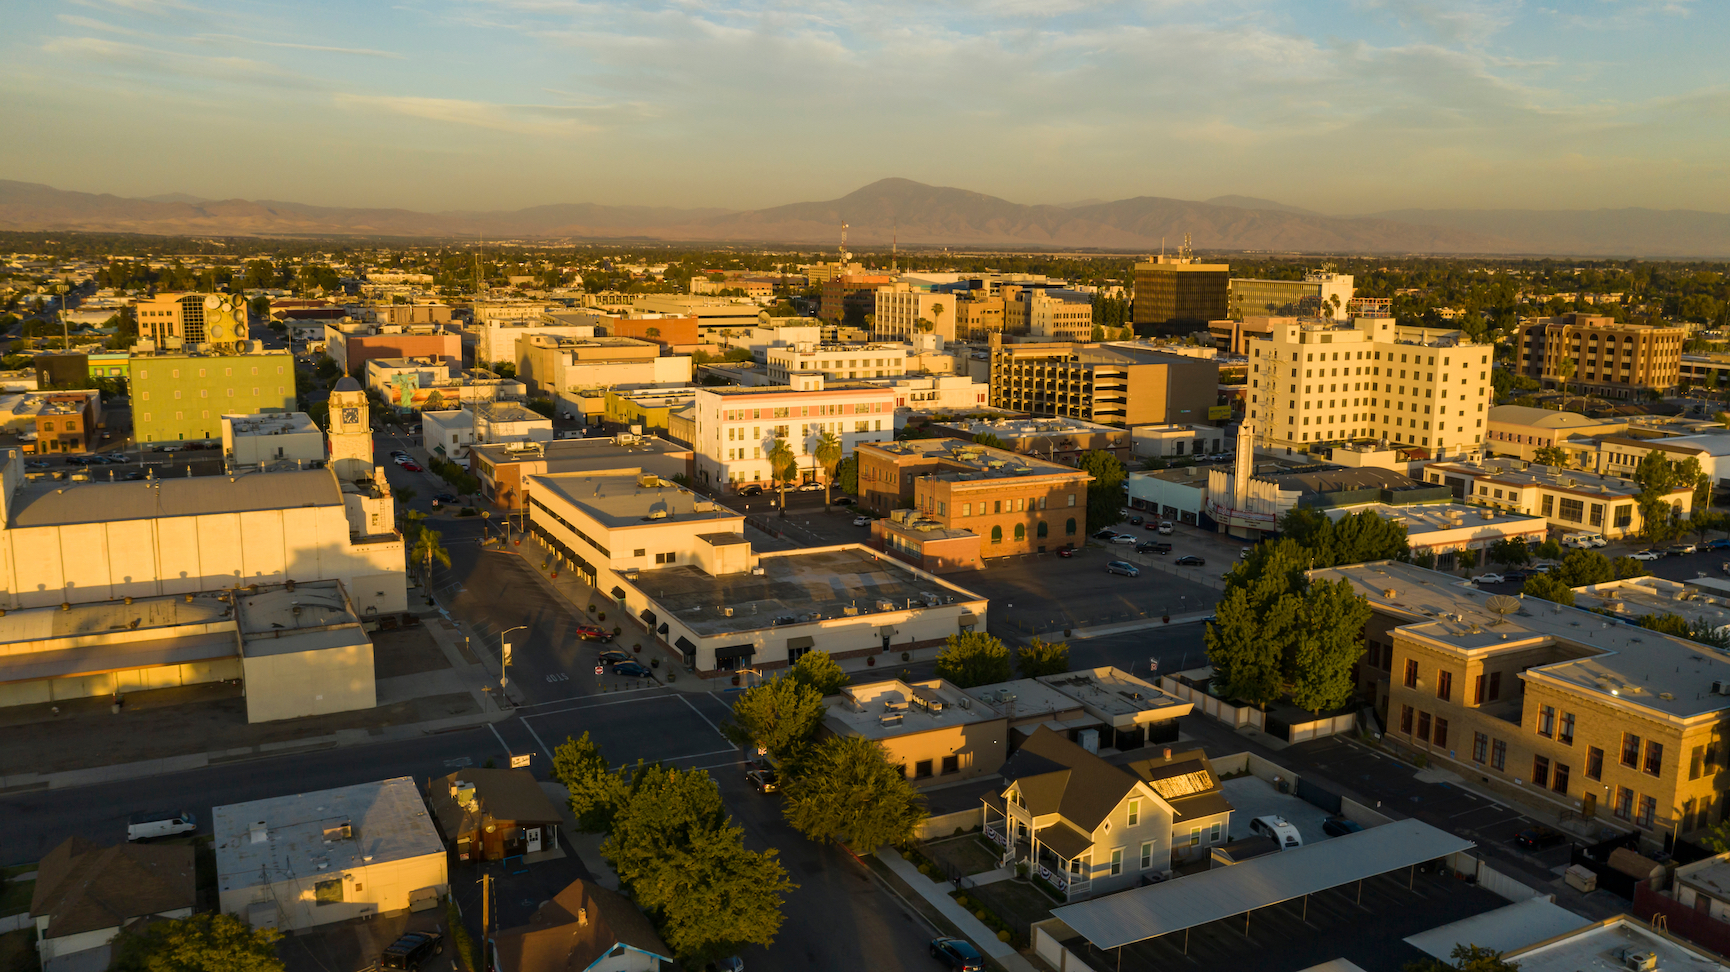 The southern city center downtown area of Bakersfield